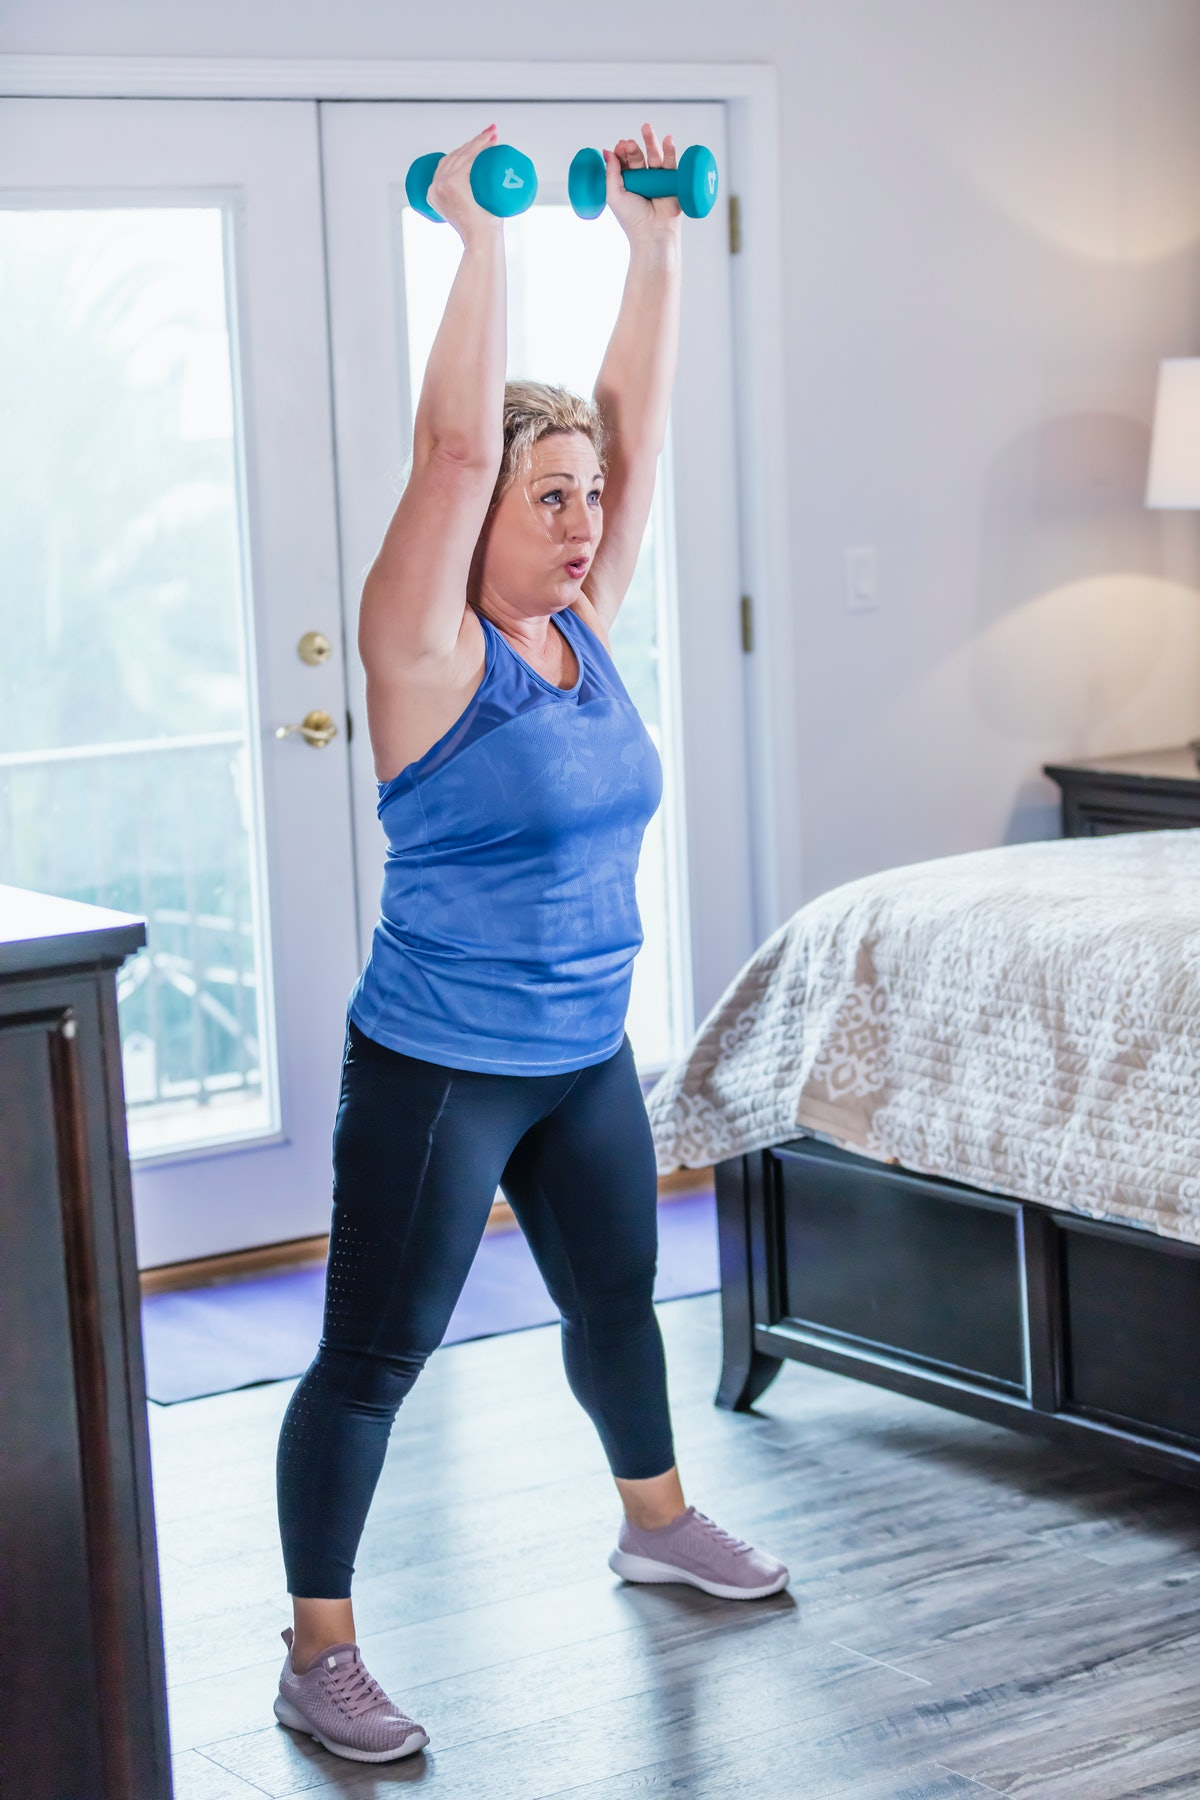 This weightlifting workout incorporates dumbbells into staple strength exercises for a full-body swe...